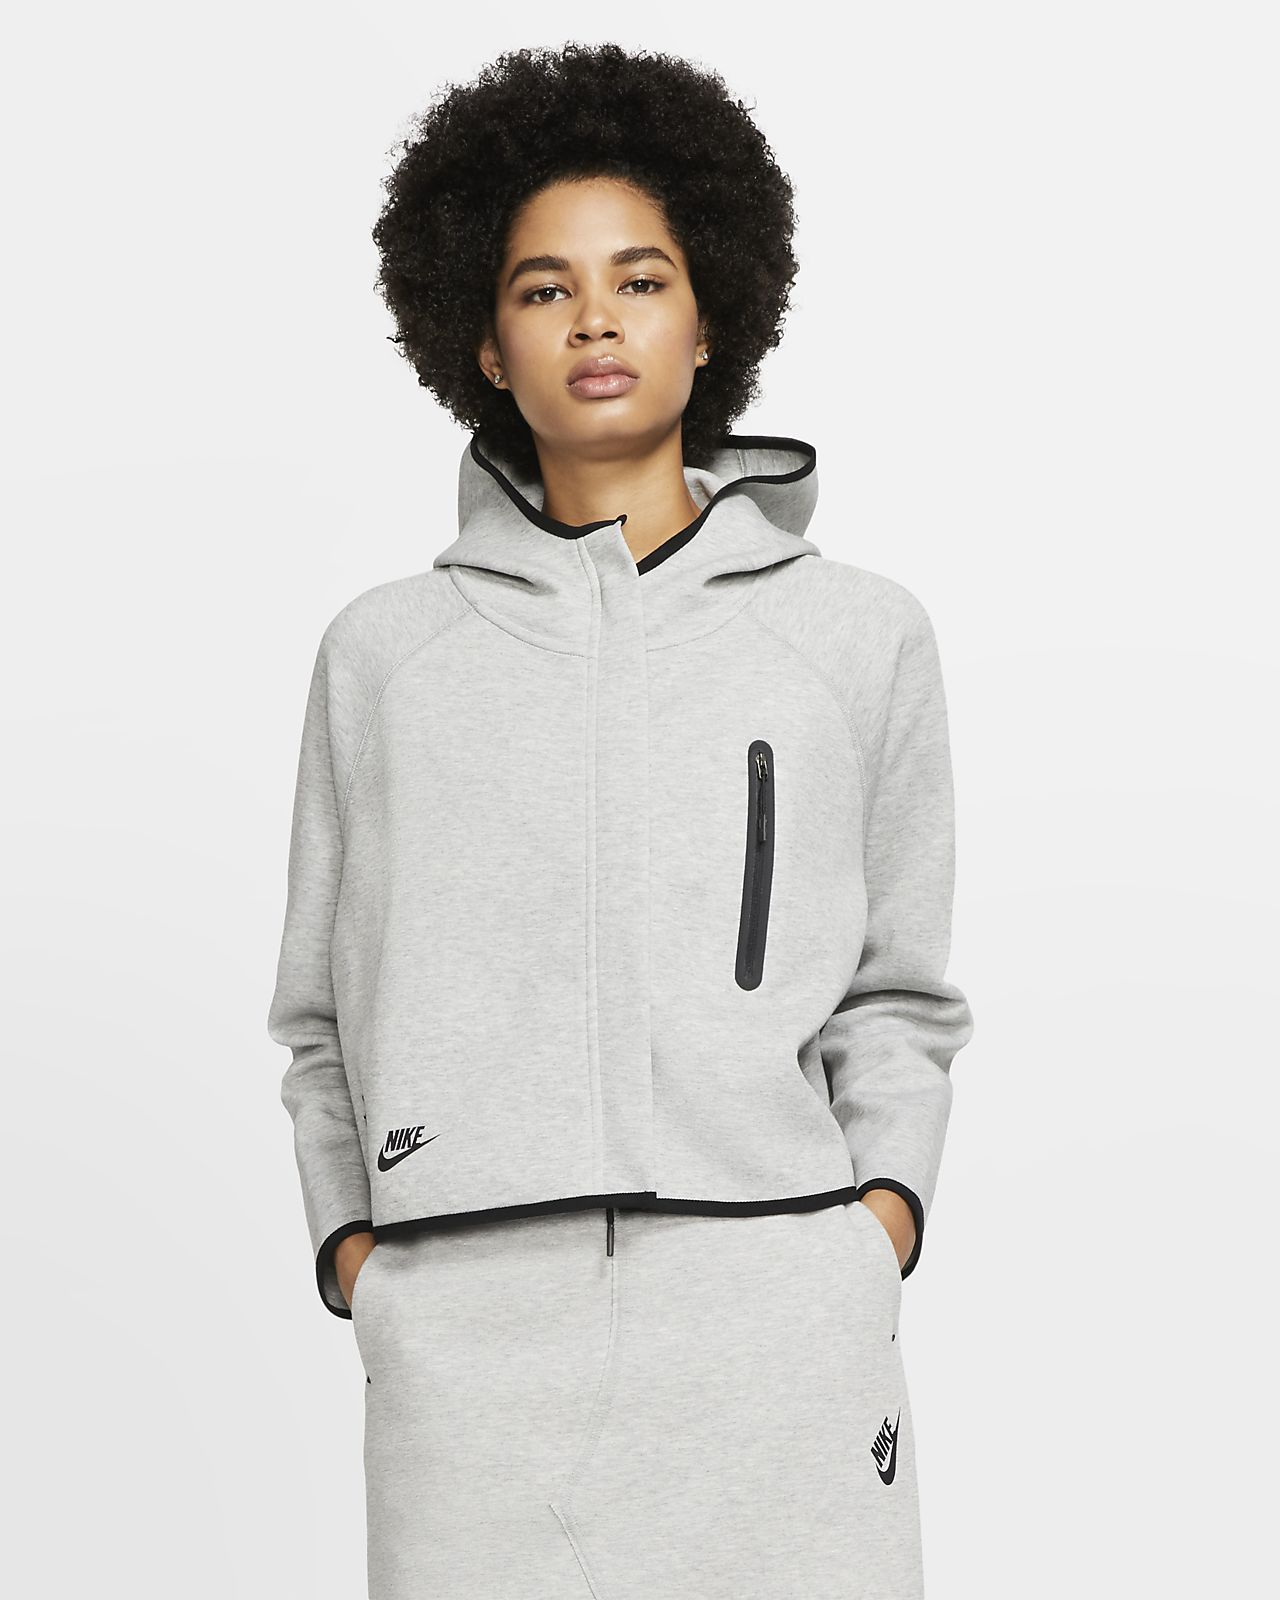 Cappa Nike Sportswear Tech Fleece - Donna